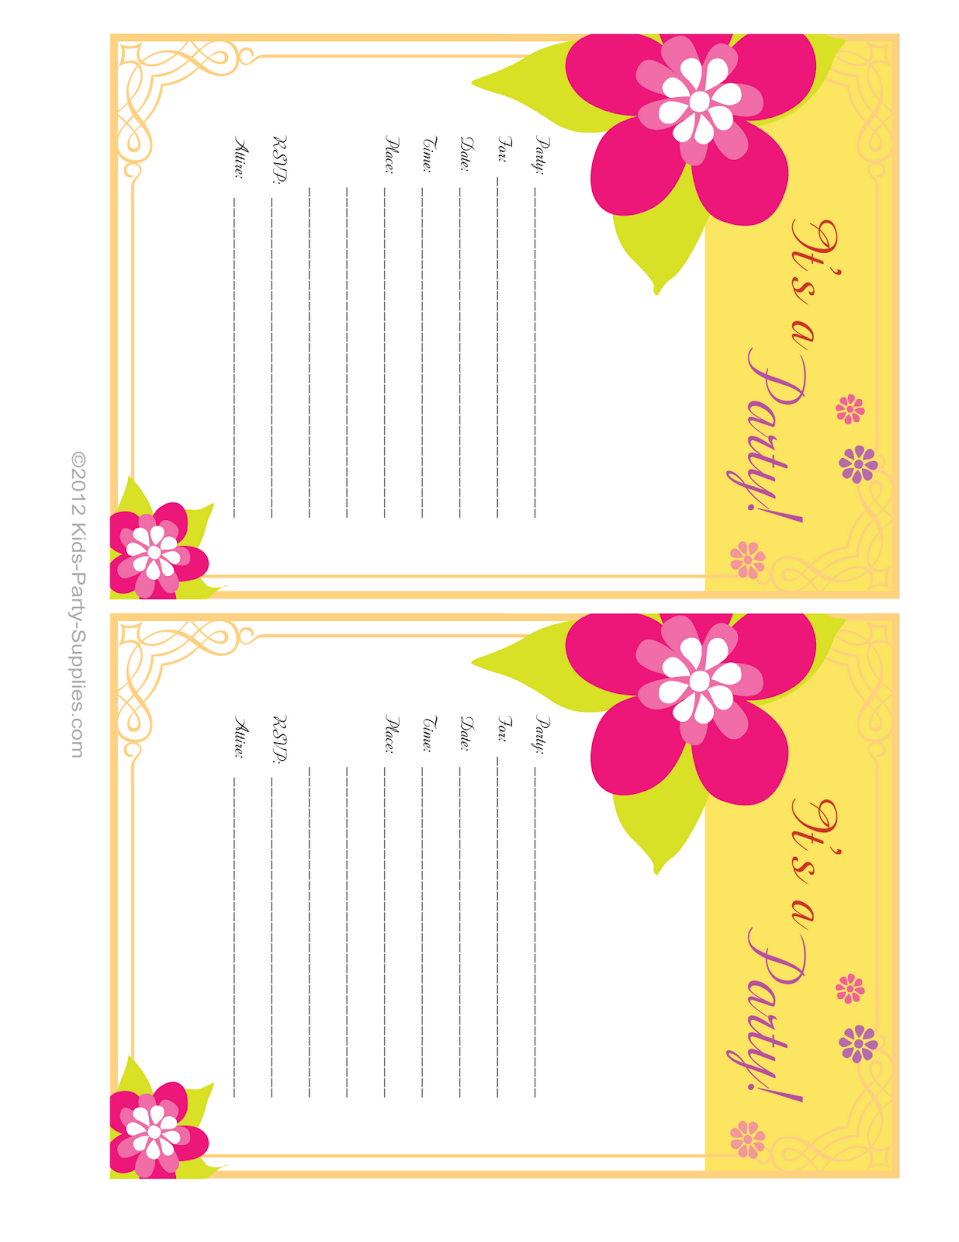 hawaiian party invitations free printable | pool party | pinterest, Invitation templates